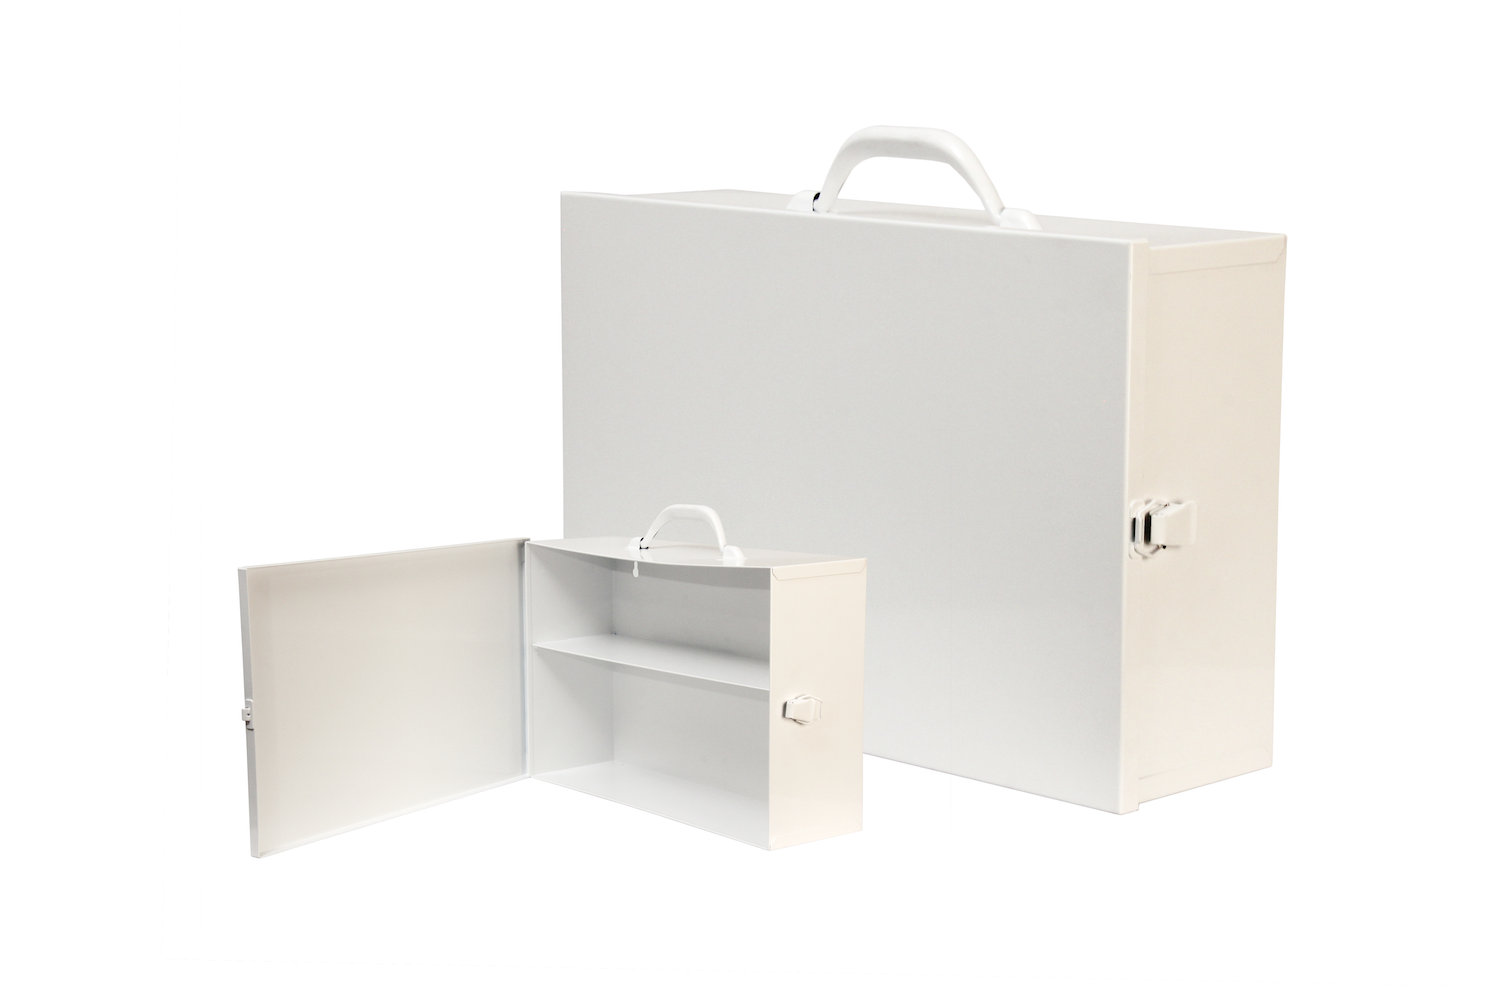 """#126 Unit First Aid Cabinet (2 Shelf) Hinge on Left / Swing-out Door   Inside dimensions 14 7/8 x 10 x 4 5/8"""" Top shelf spacing 4 1/2"""" 20/22 ga steel / individual weight 8 lbs Individual carton Max QTY per 40 x 48"""" pallet—108 Gloss white powder coating"""